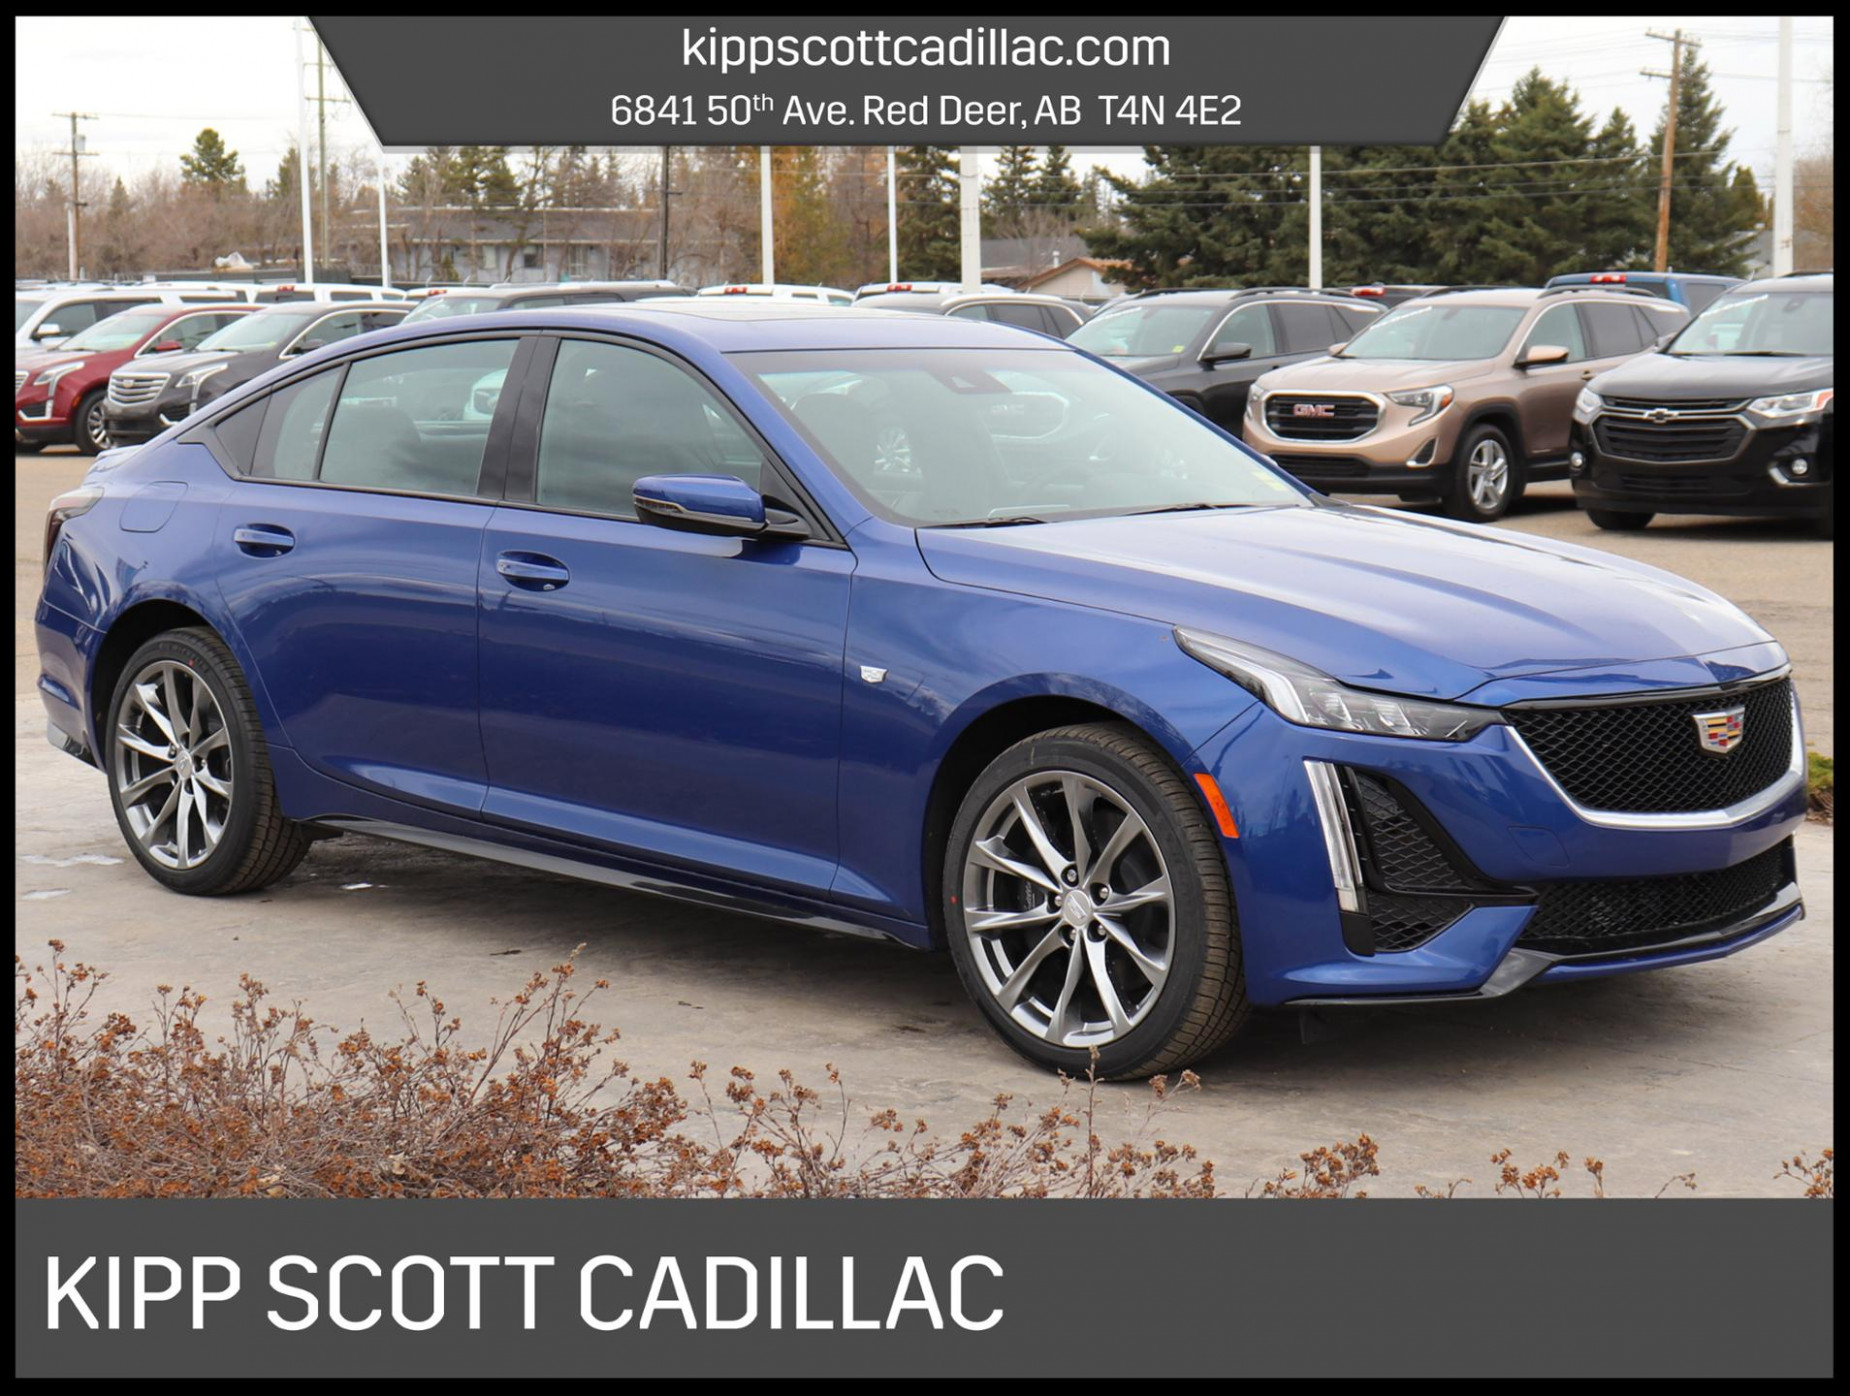 7 Cadillac CT7 for sale in Red Deer, AB | Kipp Scott GMC Cadillac Buick - 2020 cadillac for sale